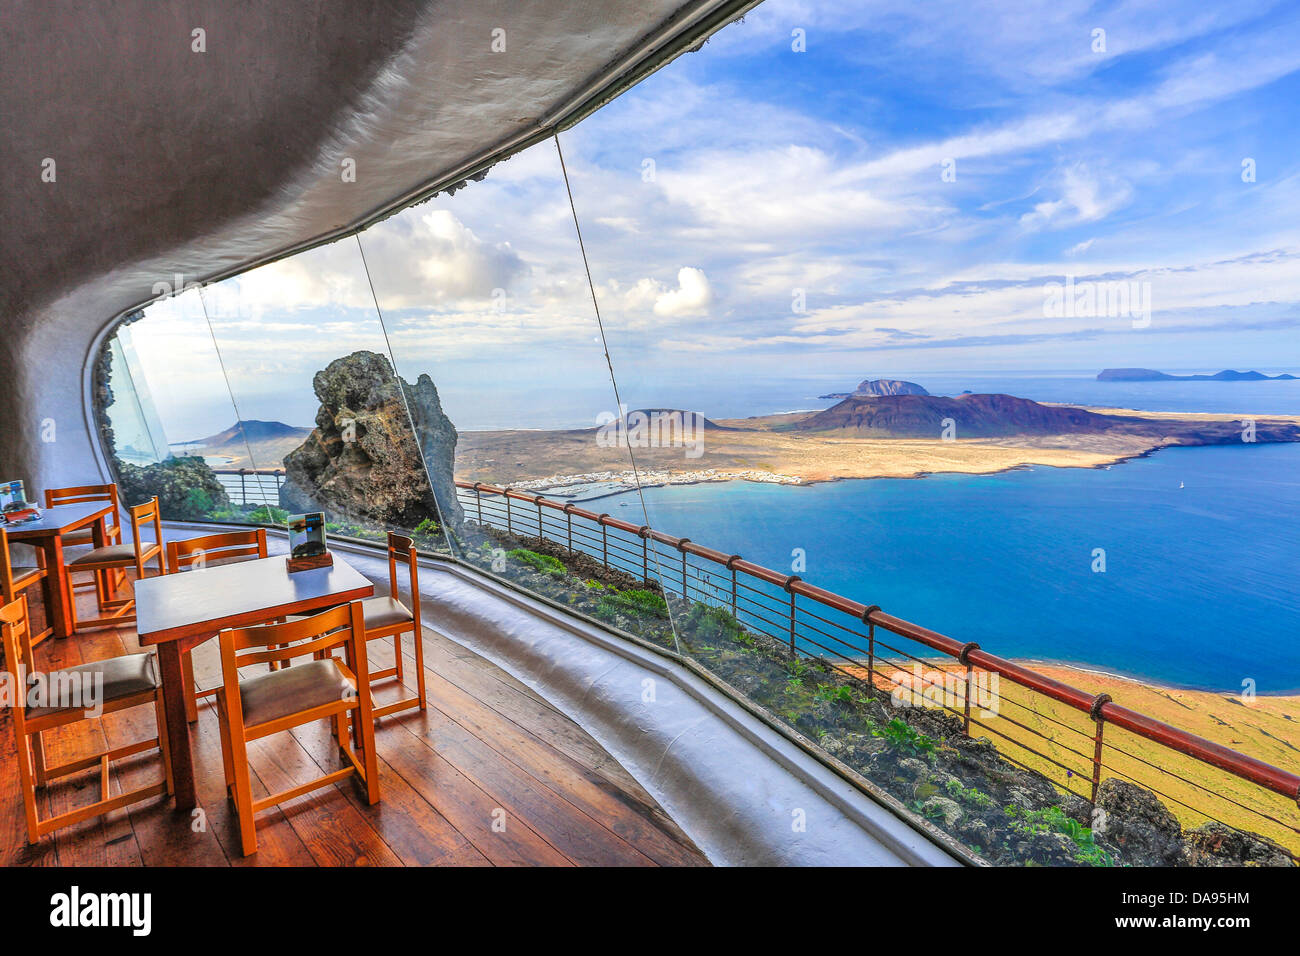 Spain, Europe, Canary Islands, Lanzarote, Mirador del Rio, architecture, bar, Cesar manrique, decoration, display, Stock Photo